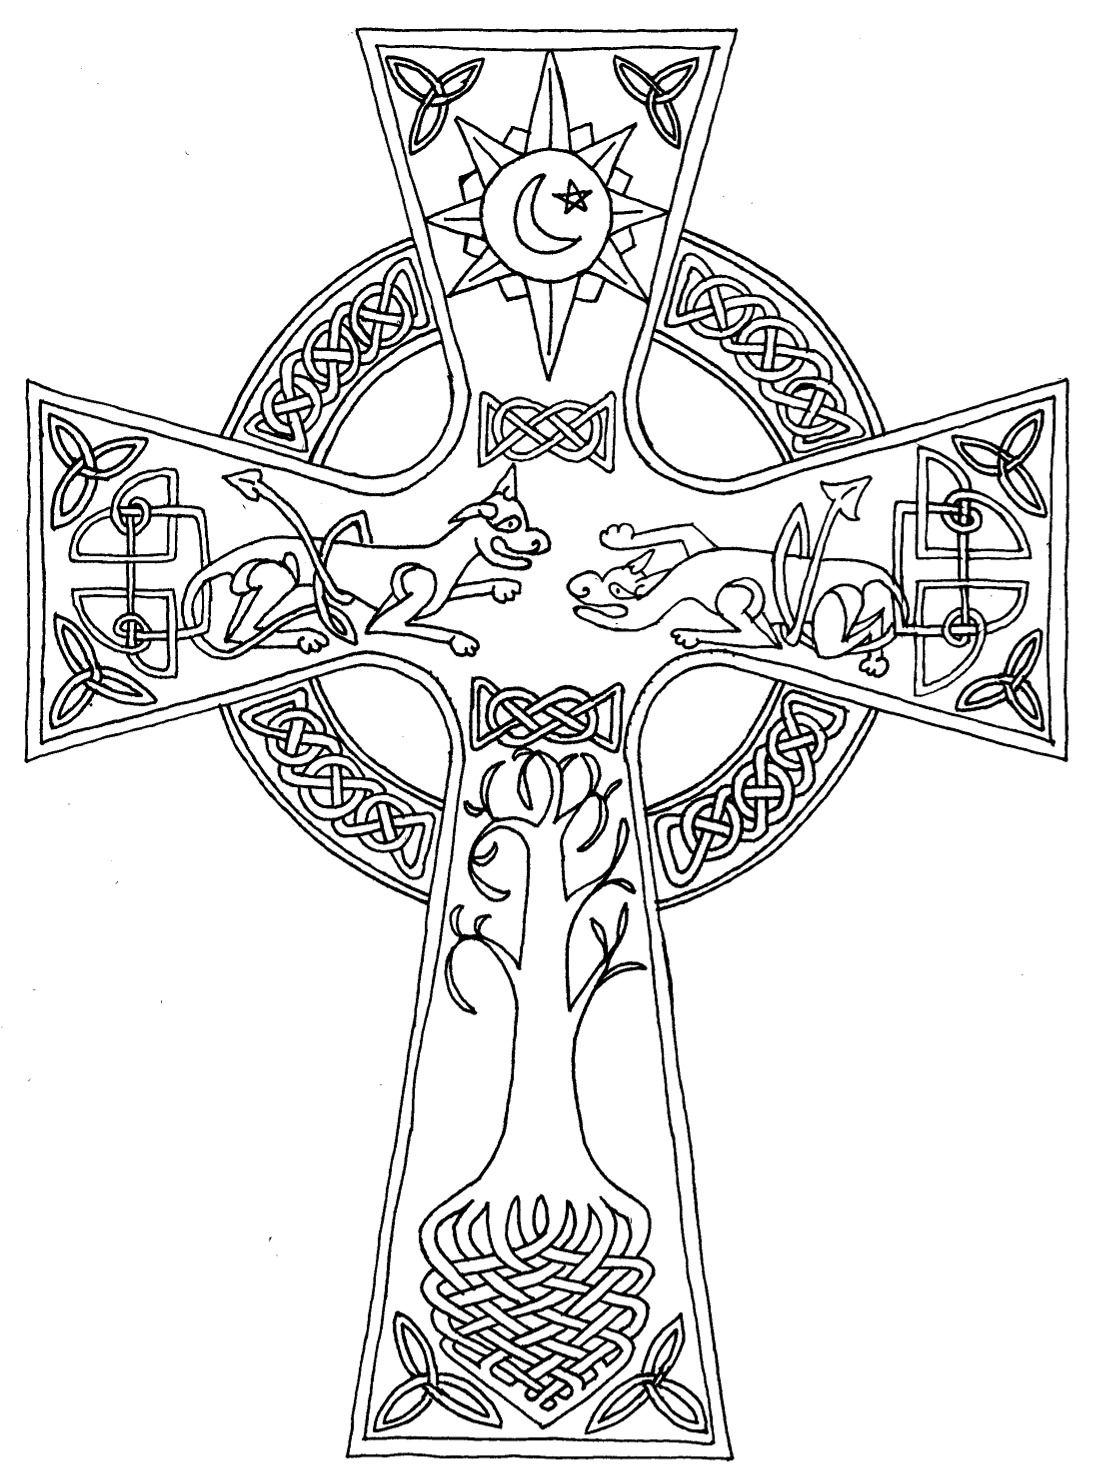 1095x1479 Coloring Pages On Adult Coloring Pages, Coloring Pages